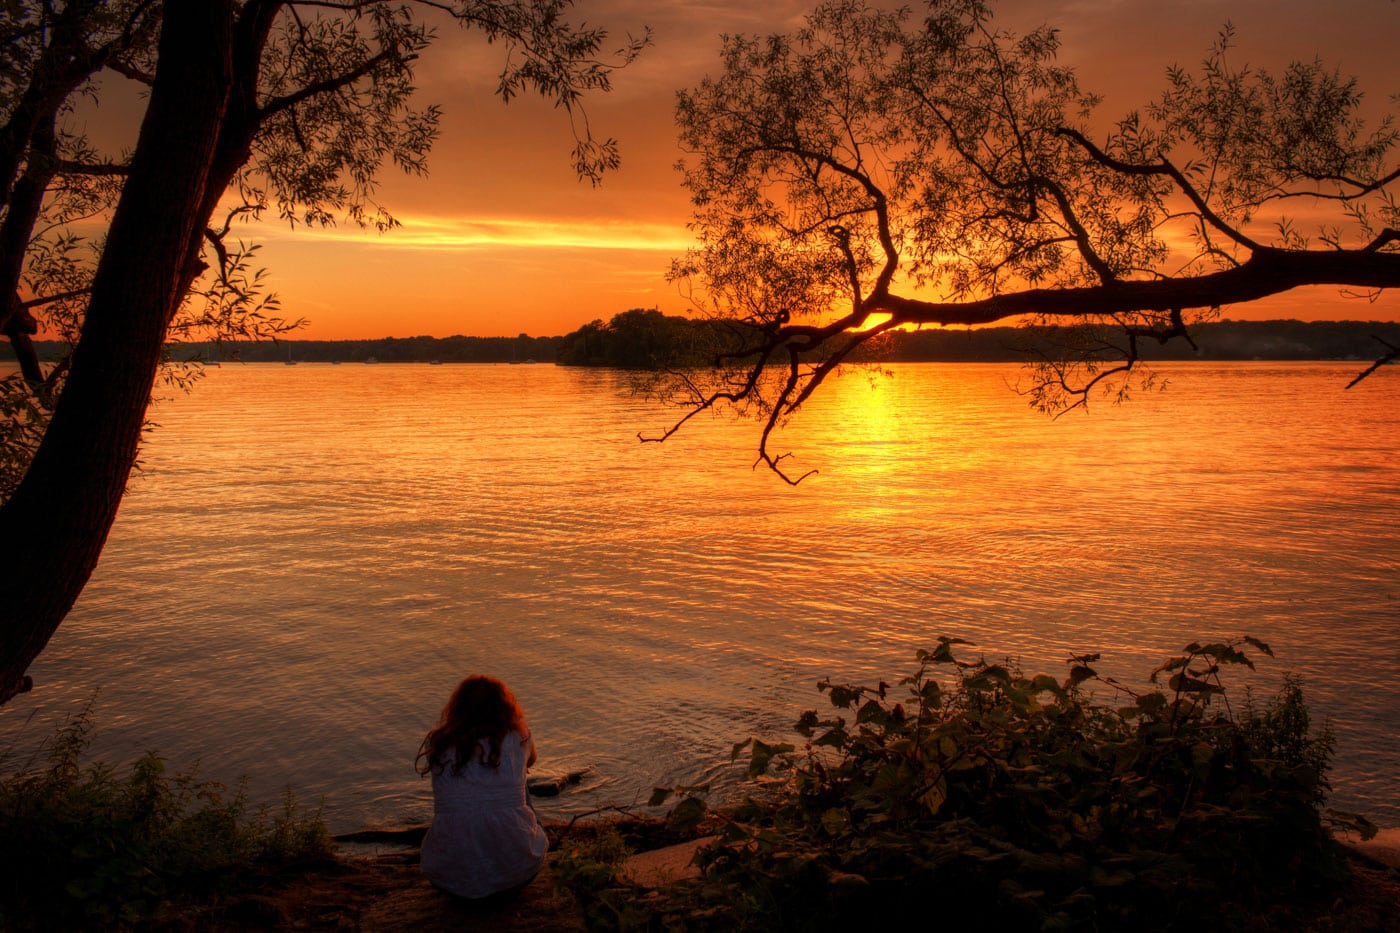 Girl sitting and staring at the sunset at Lake Tegel in the northern part of Berlin